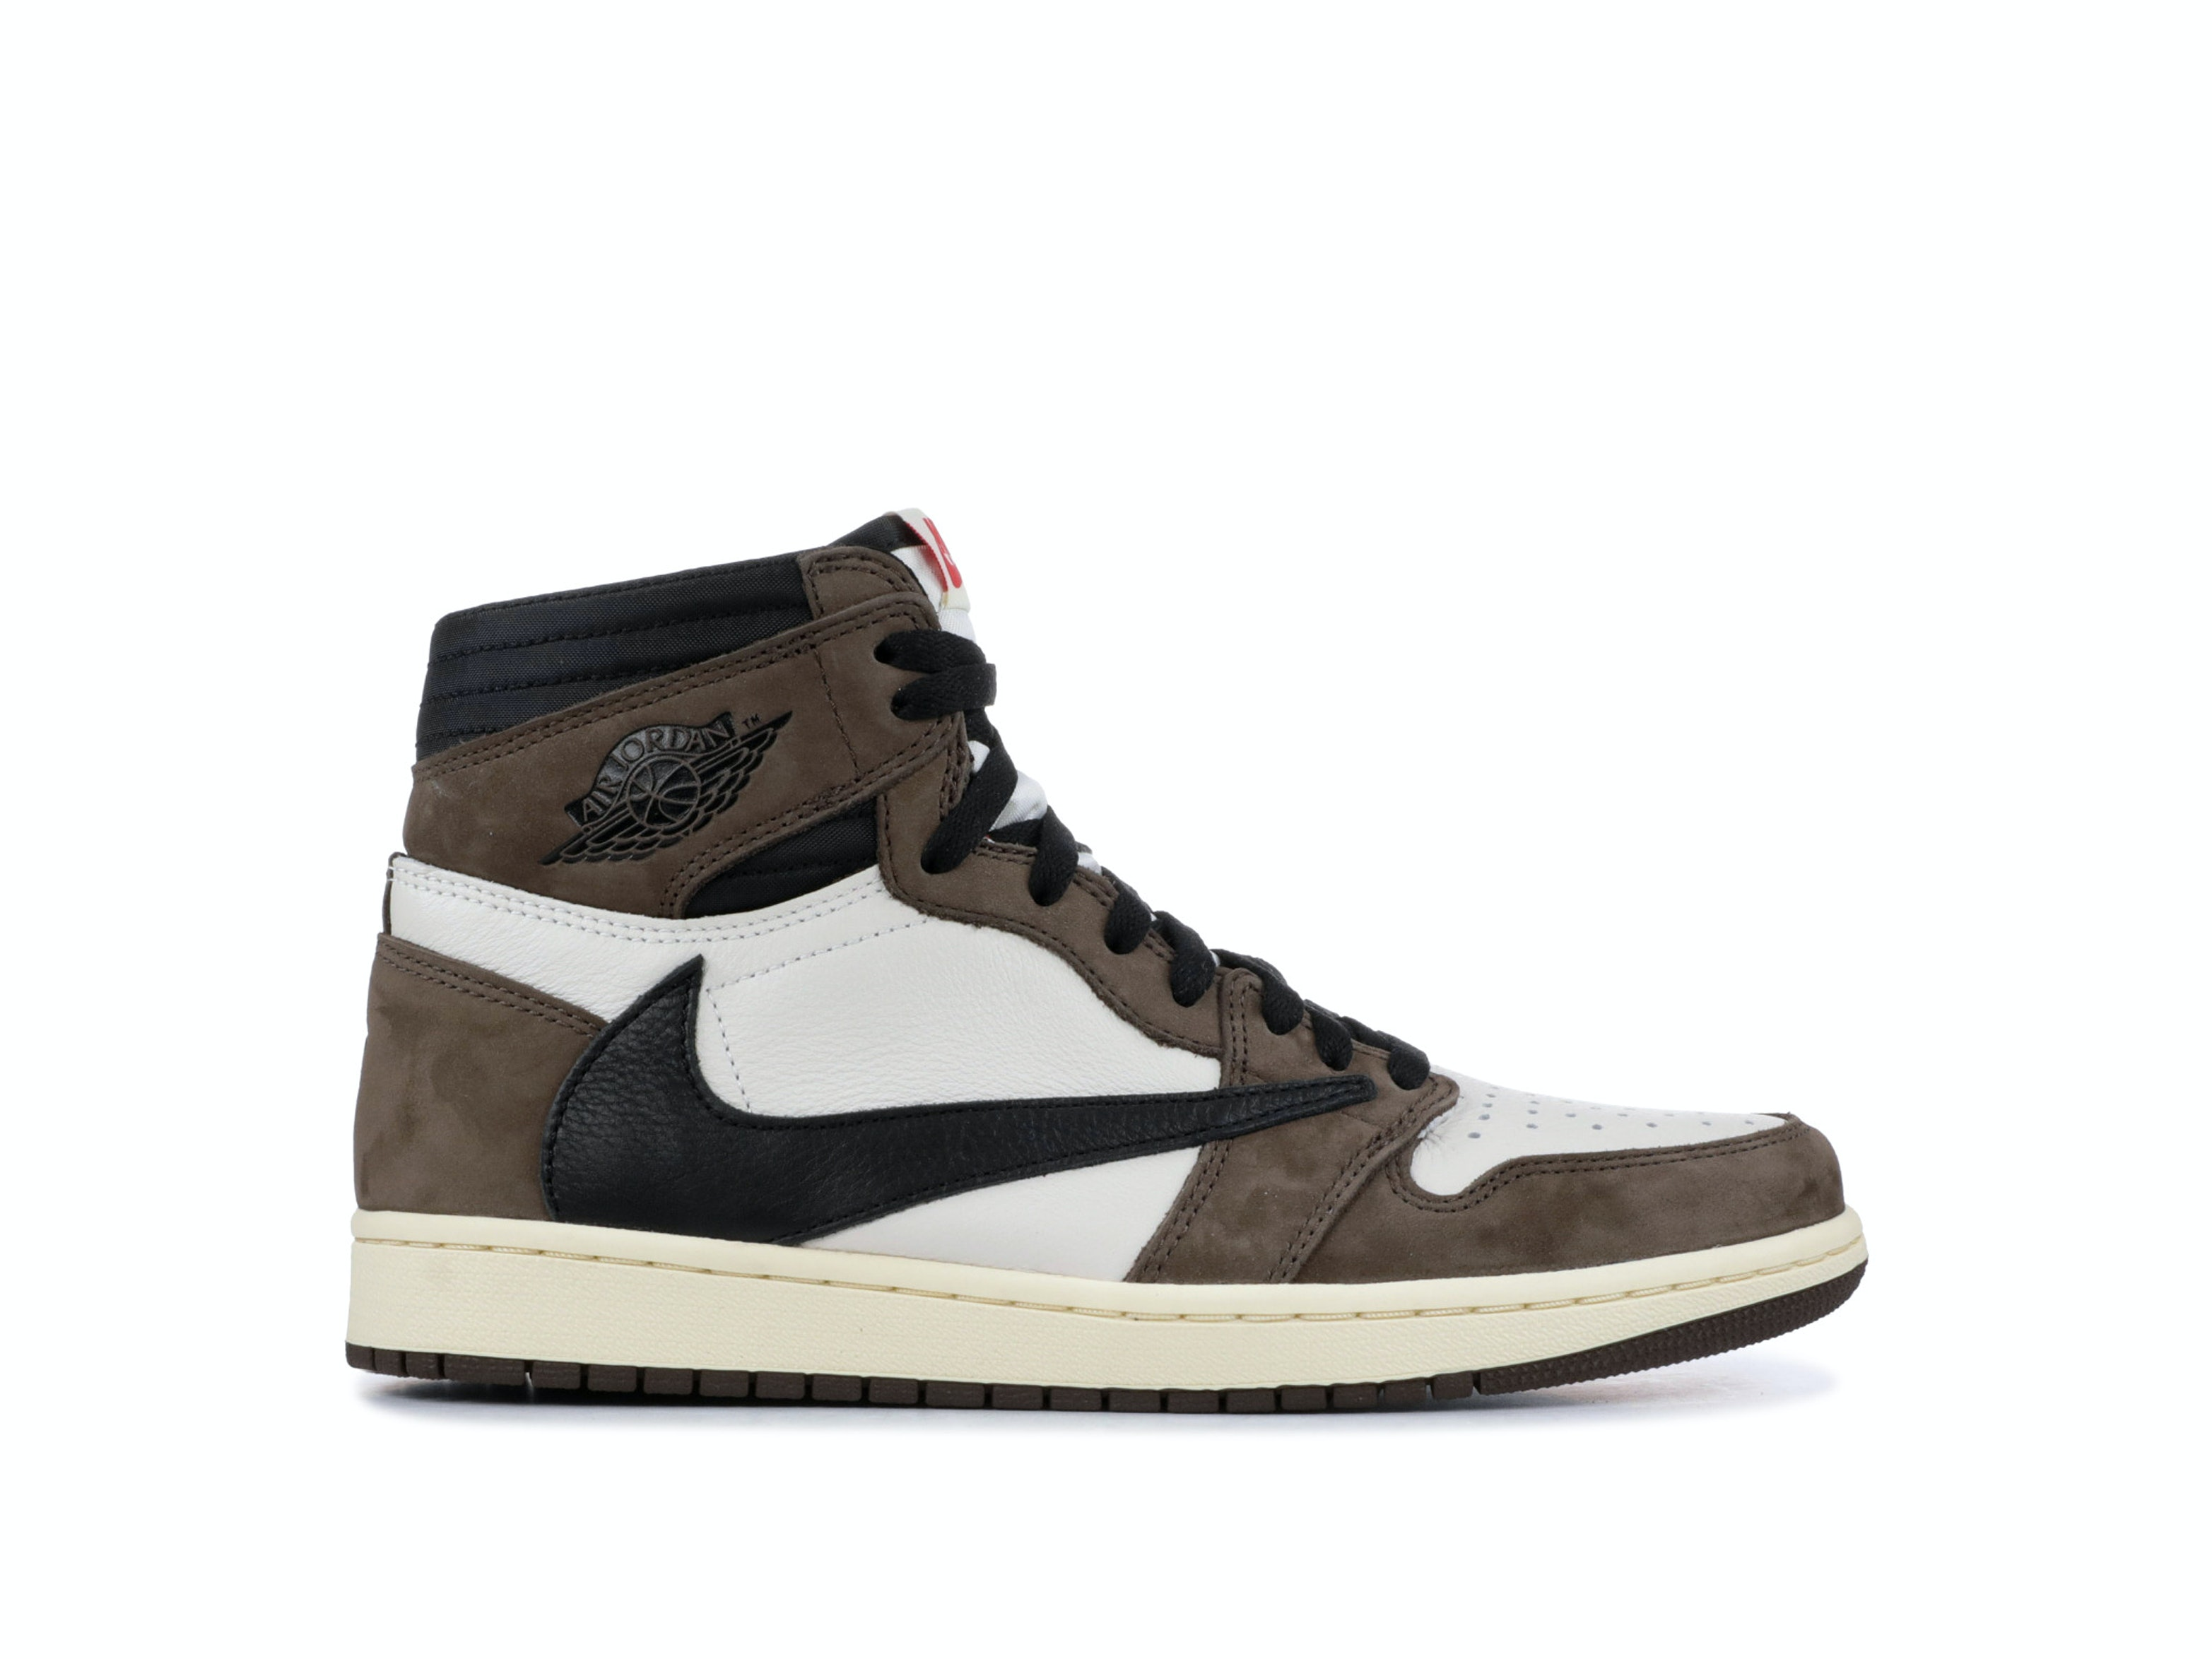 buy online 92059 15a07 Travis Scott x Air Jordan 1 Retro High OG 'Mocha'